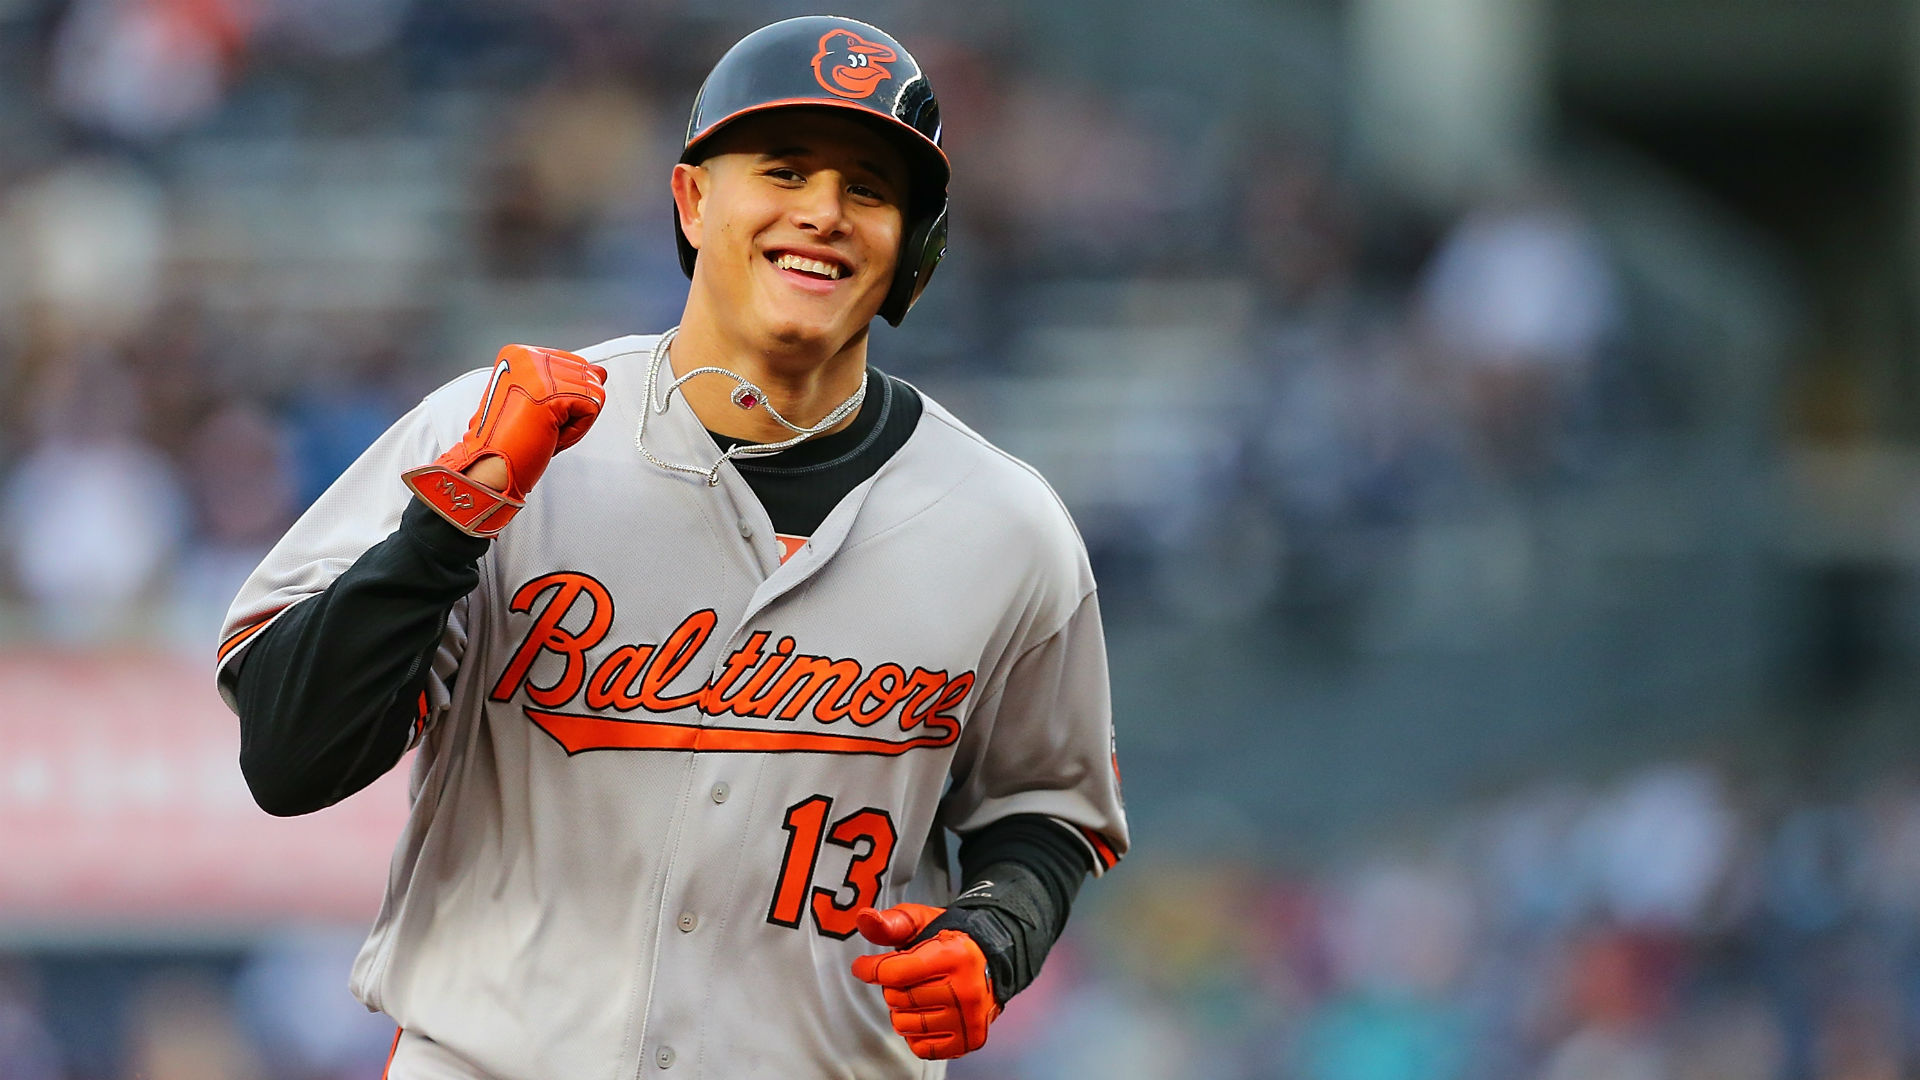 The Yankees are trying to trade for Manny Machado again